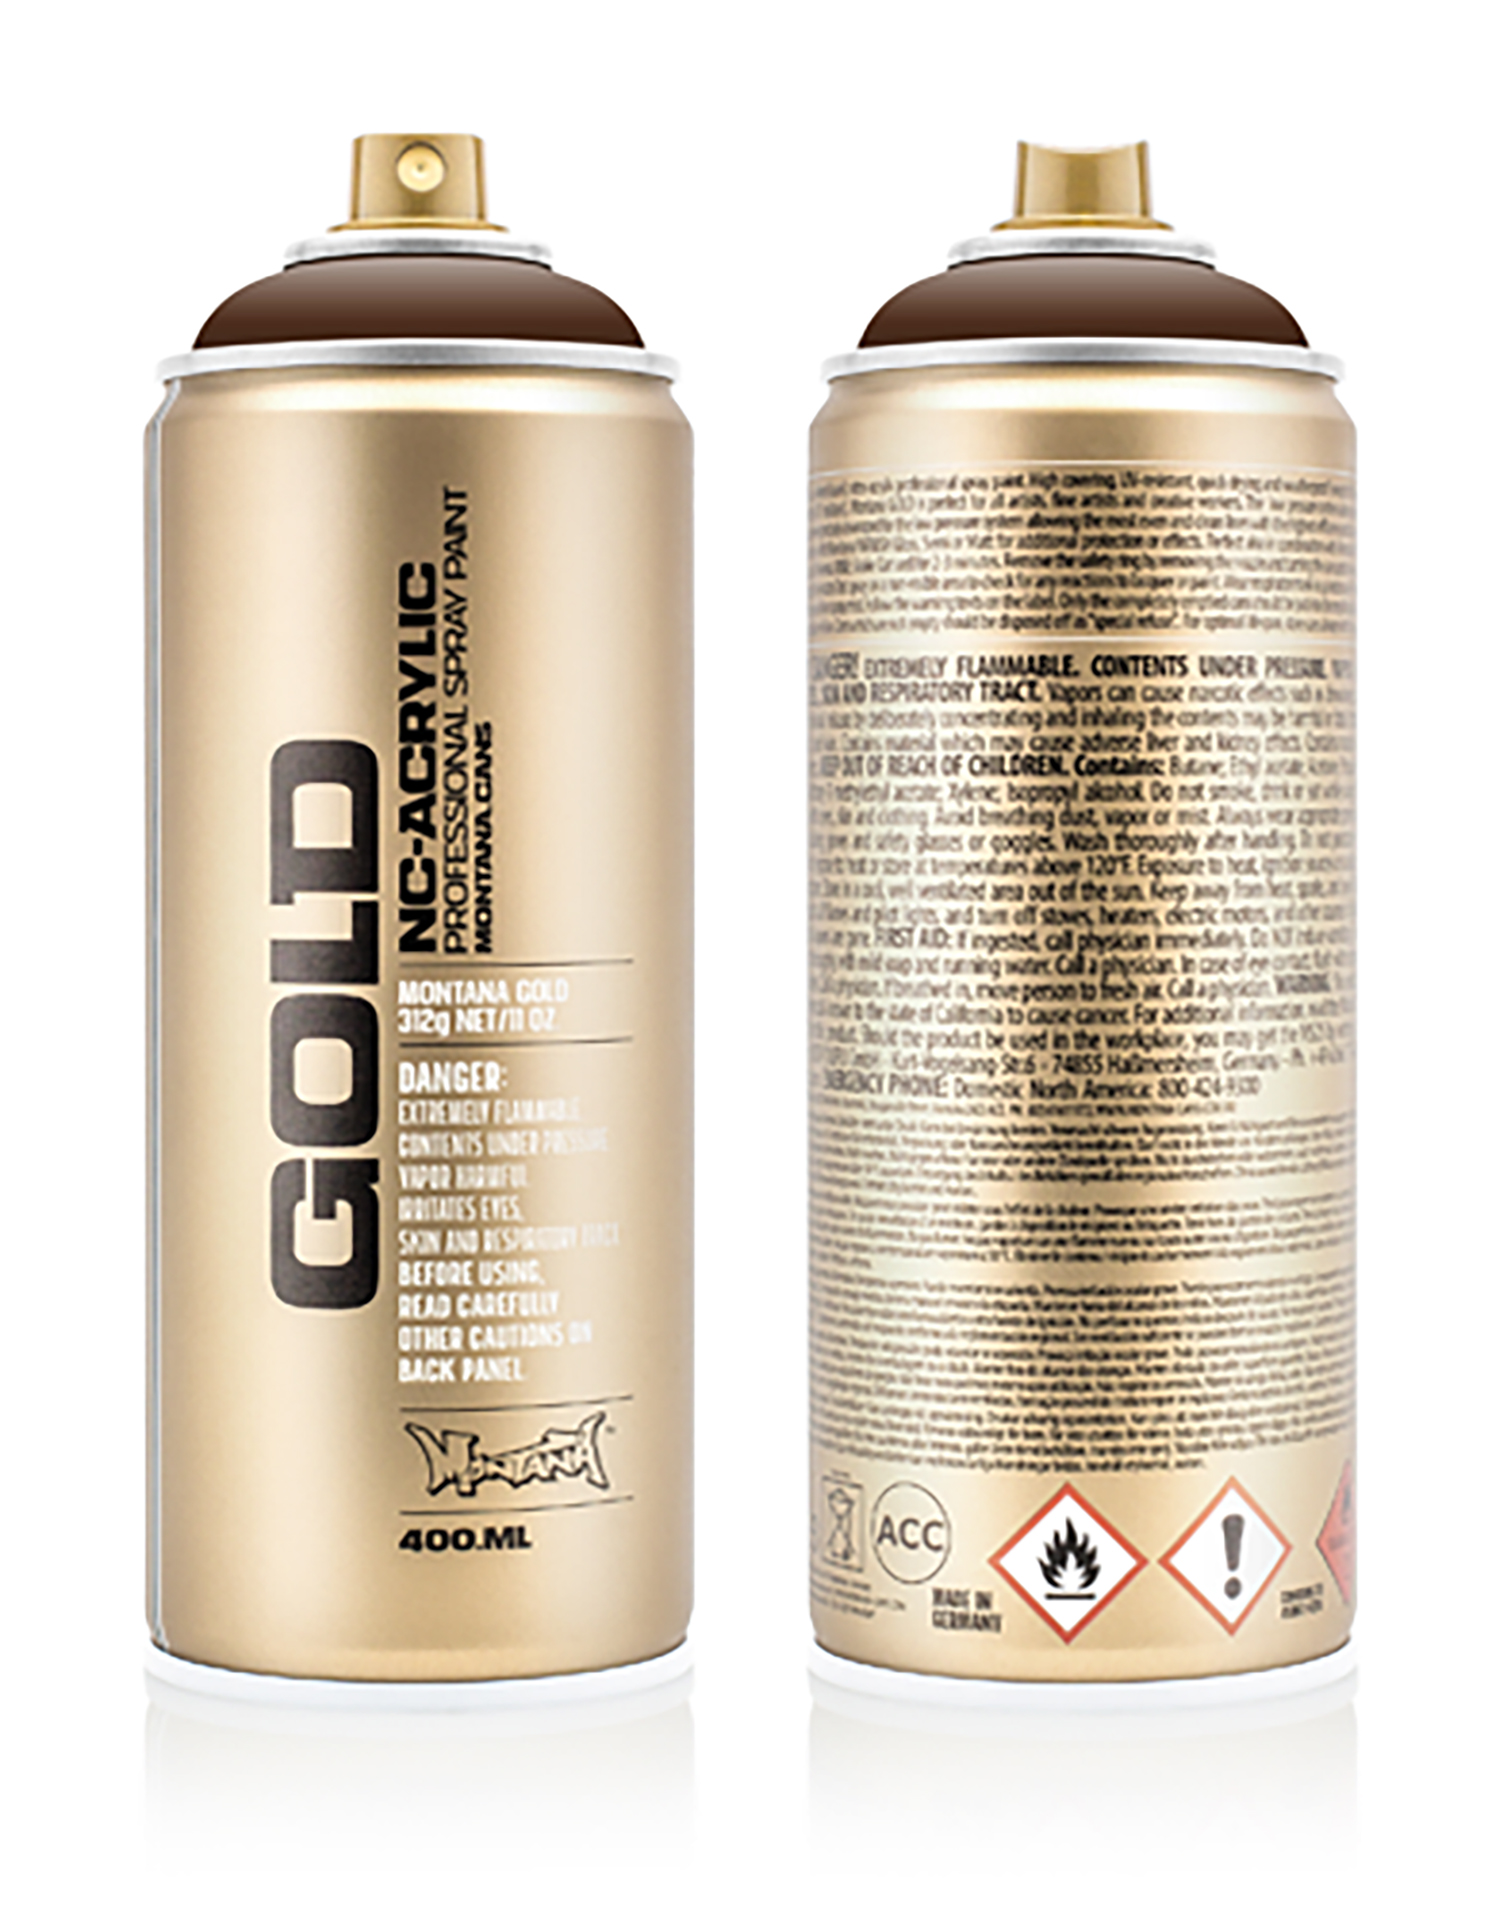 MONTANA-GOLD-SPRAY-400ML-G-8120